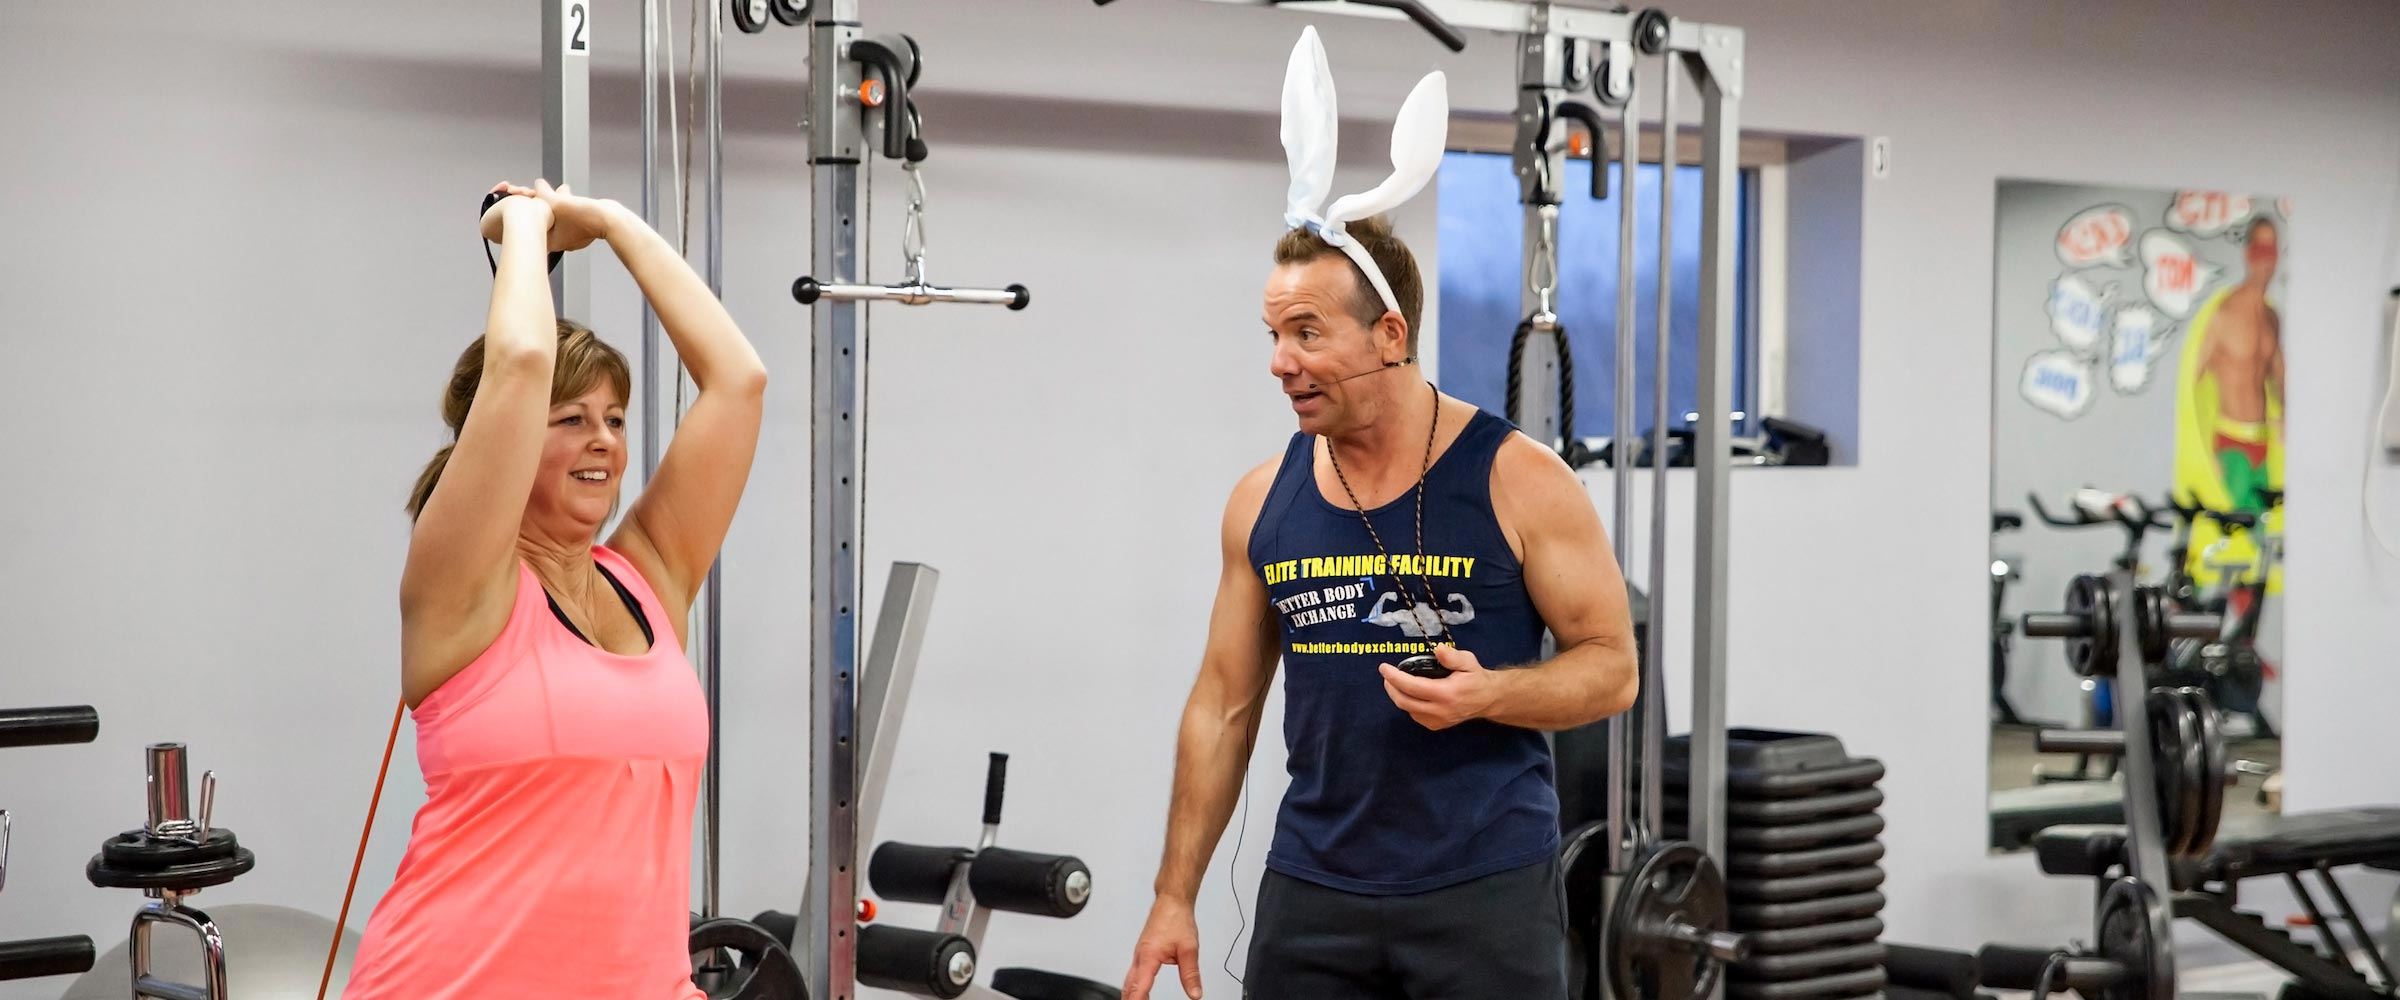 Personal Training Pricing with Elite Training Facility